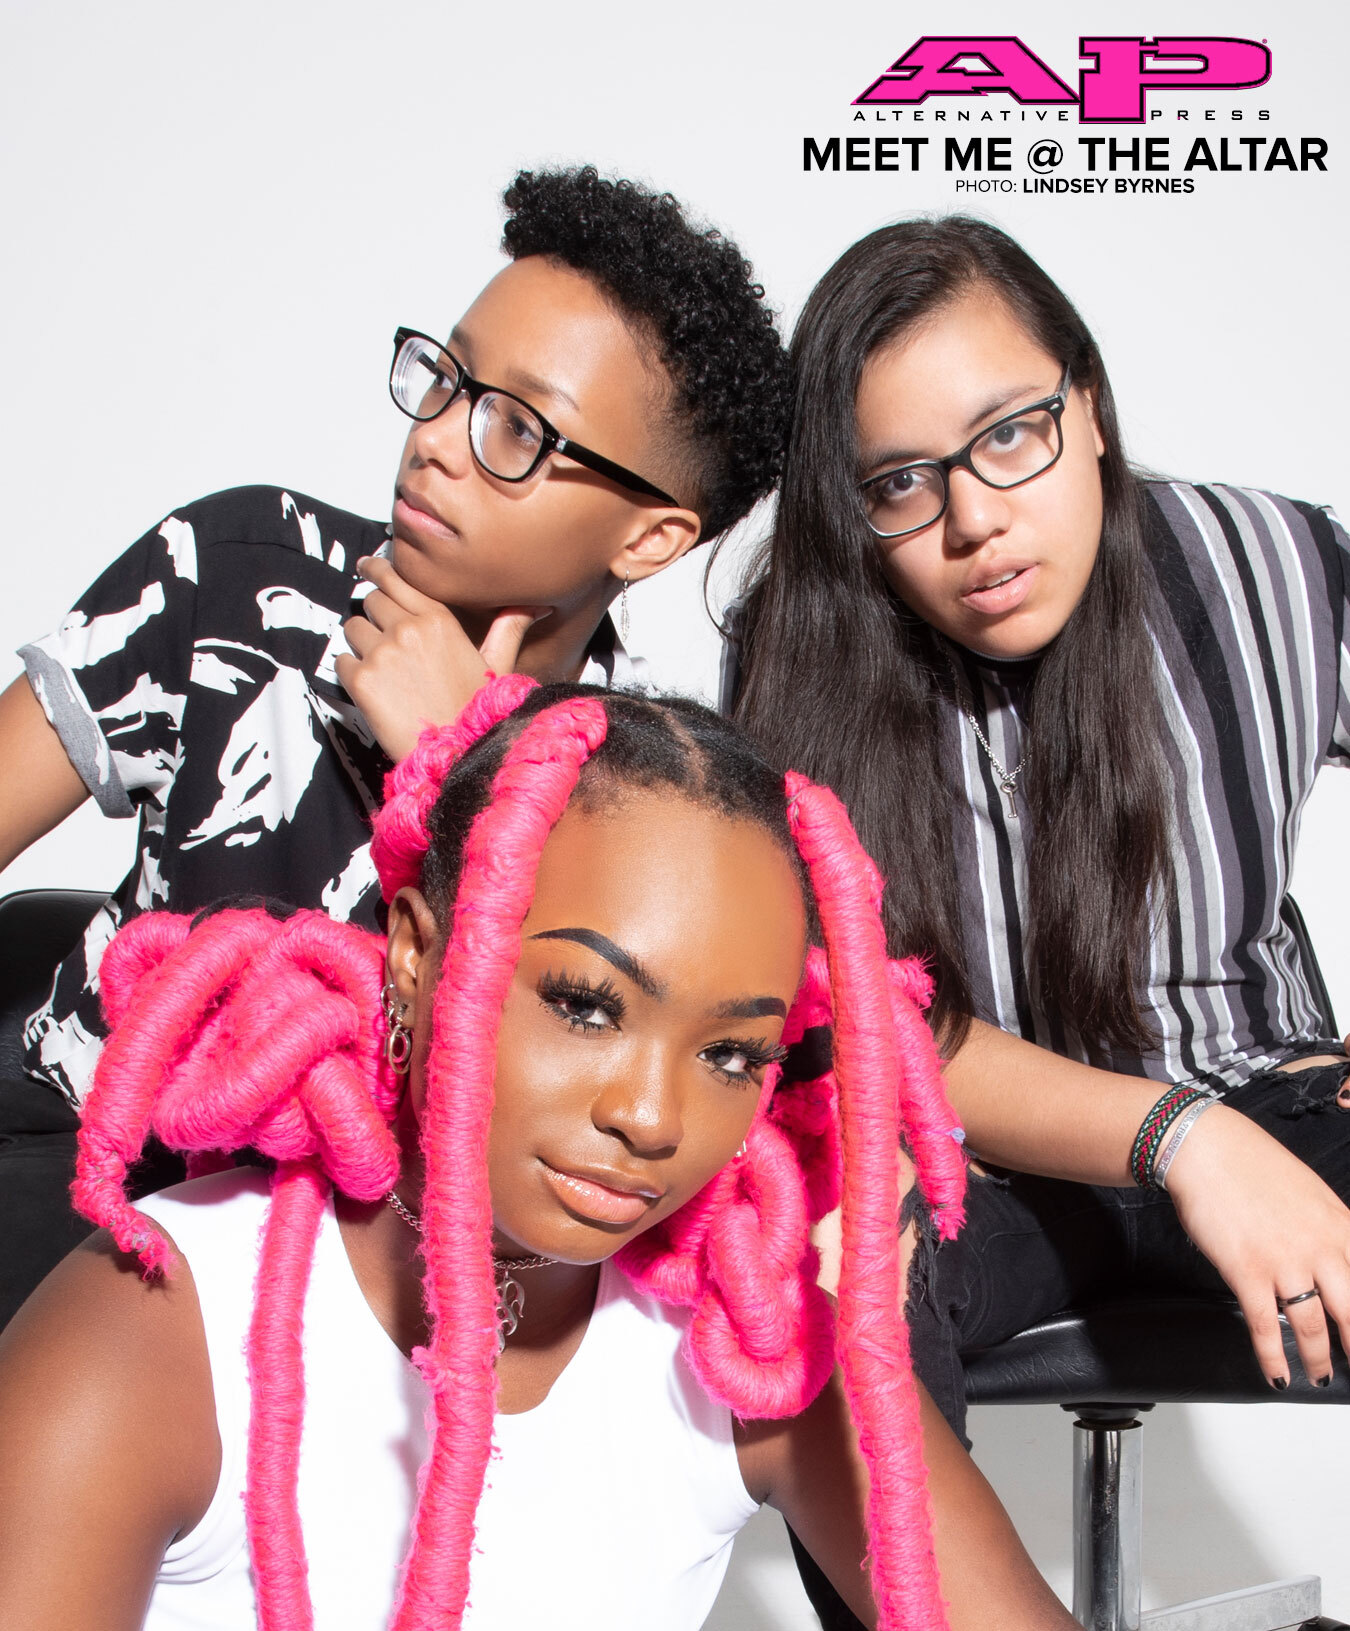 Meet Me @ The Altar alternative press digital cover